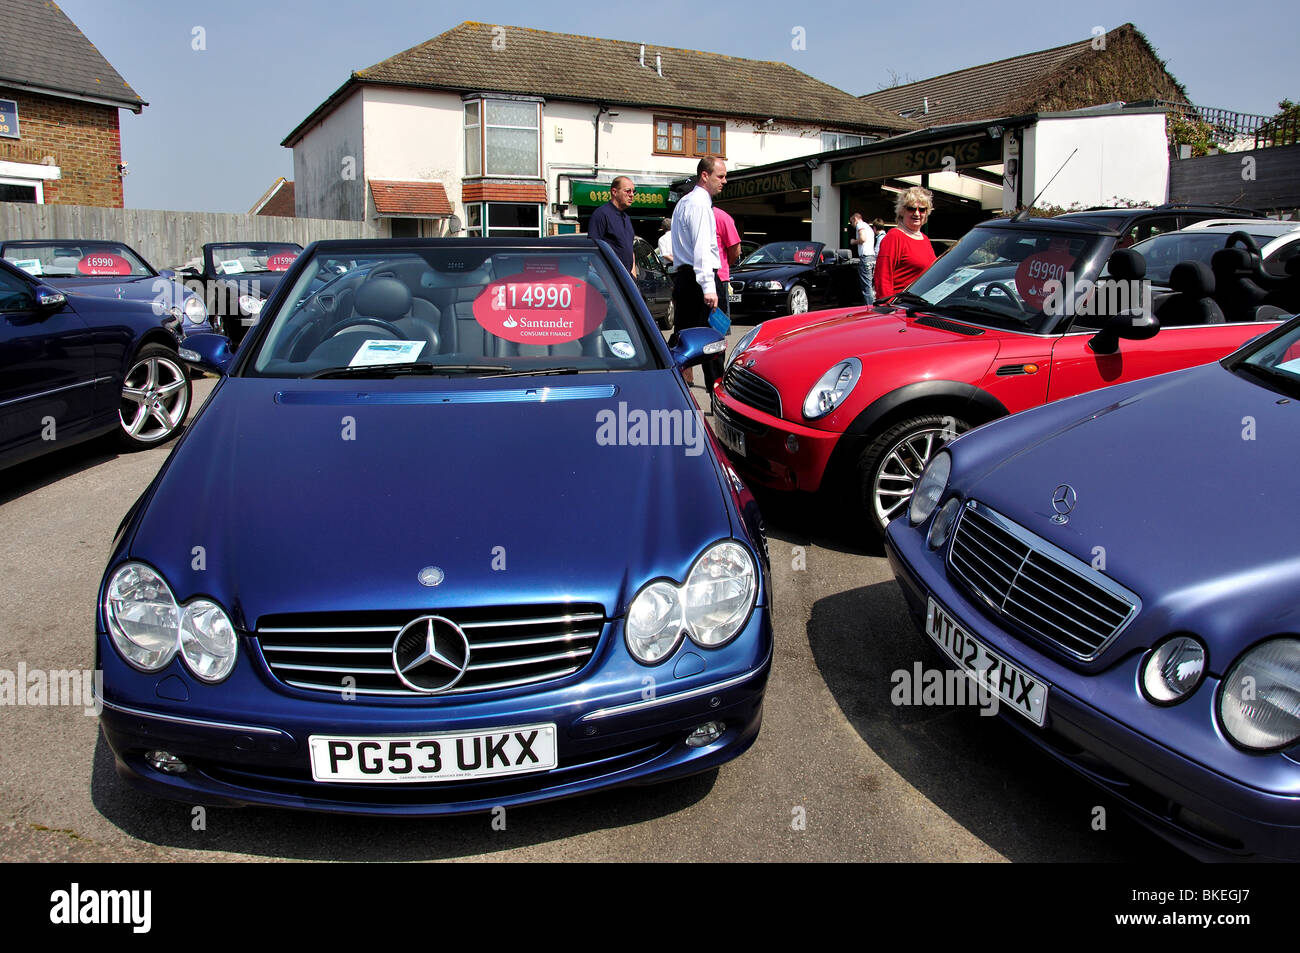 Sussex car sales